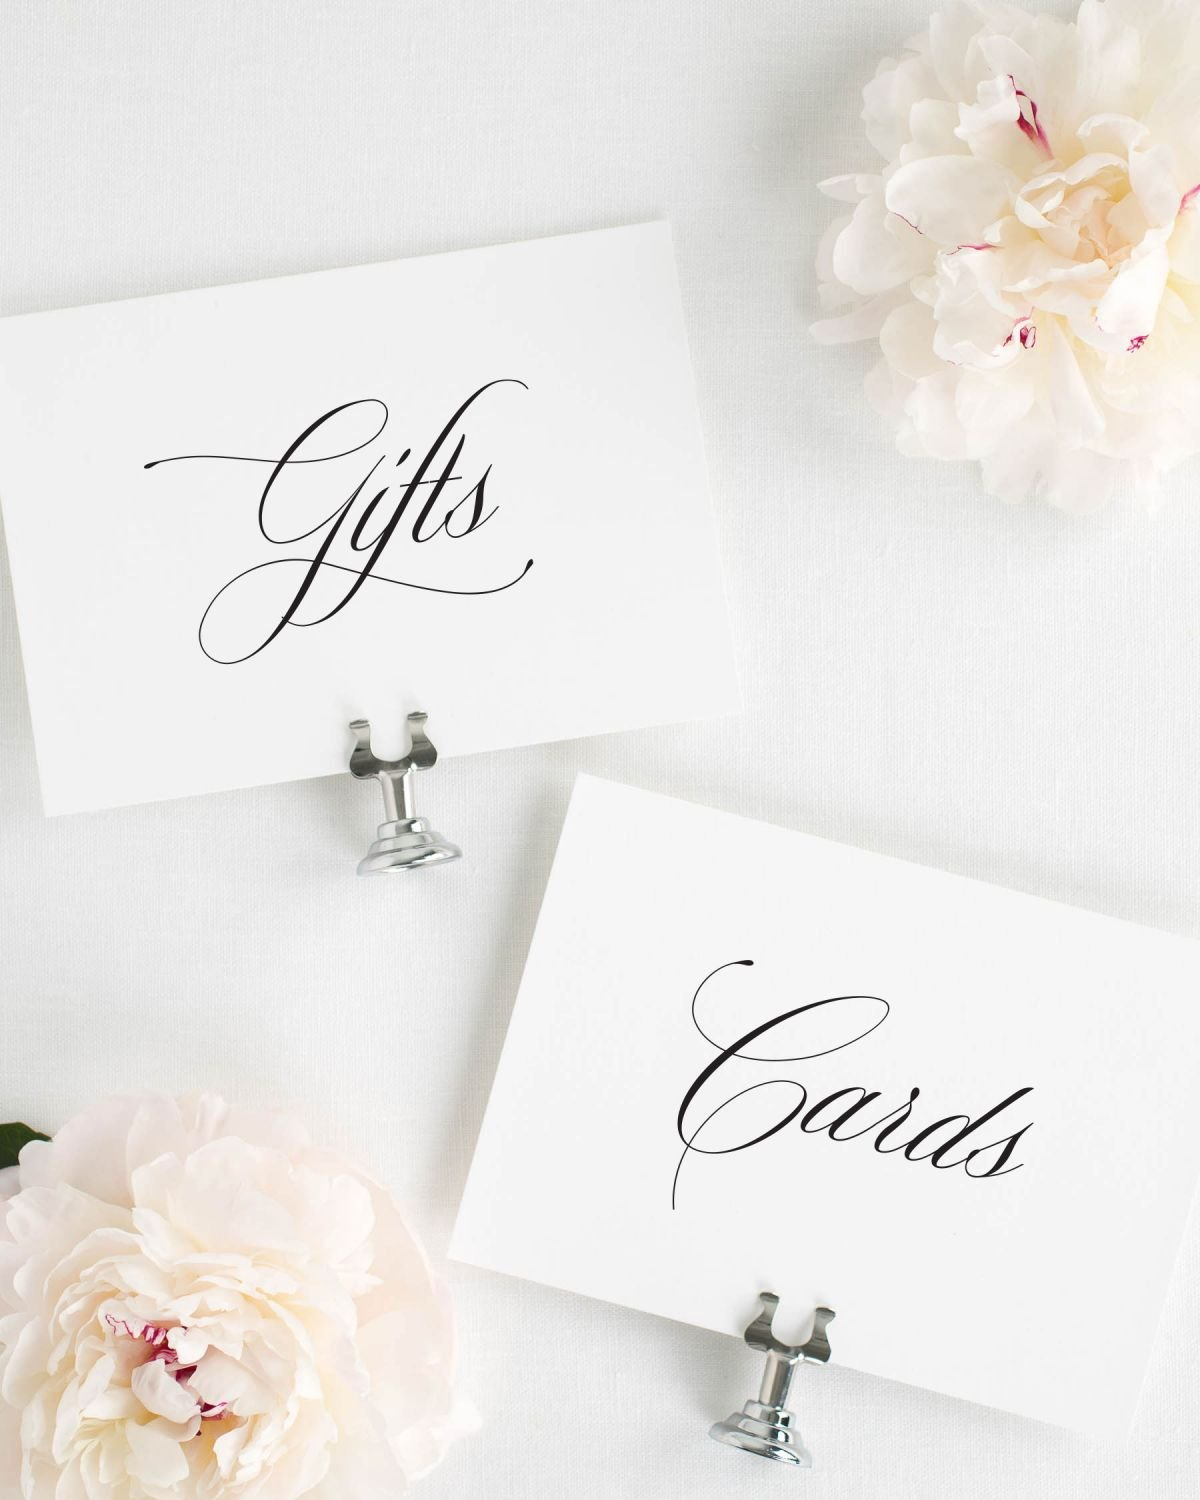 Cards and Gifts Wedding Signs